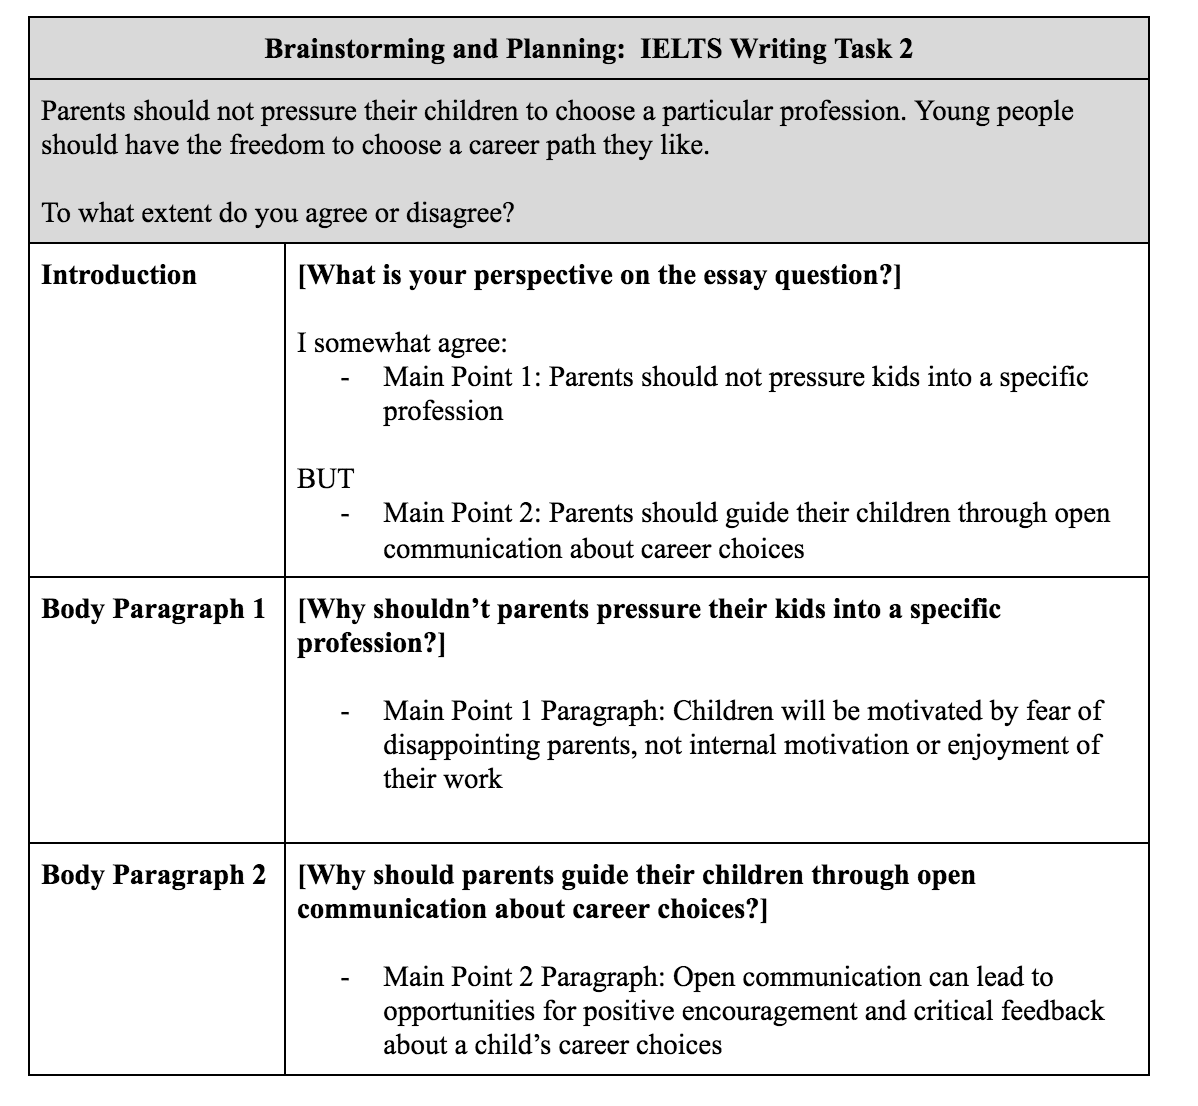 planning essays writing Wwwkentacuk/learning subject discipline make sure you check the meaning of 'instructional' words (discuss, compare, analyse@ see list below.